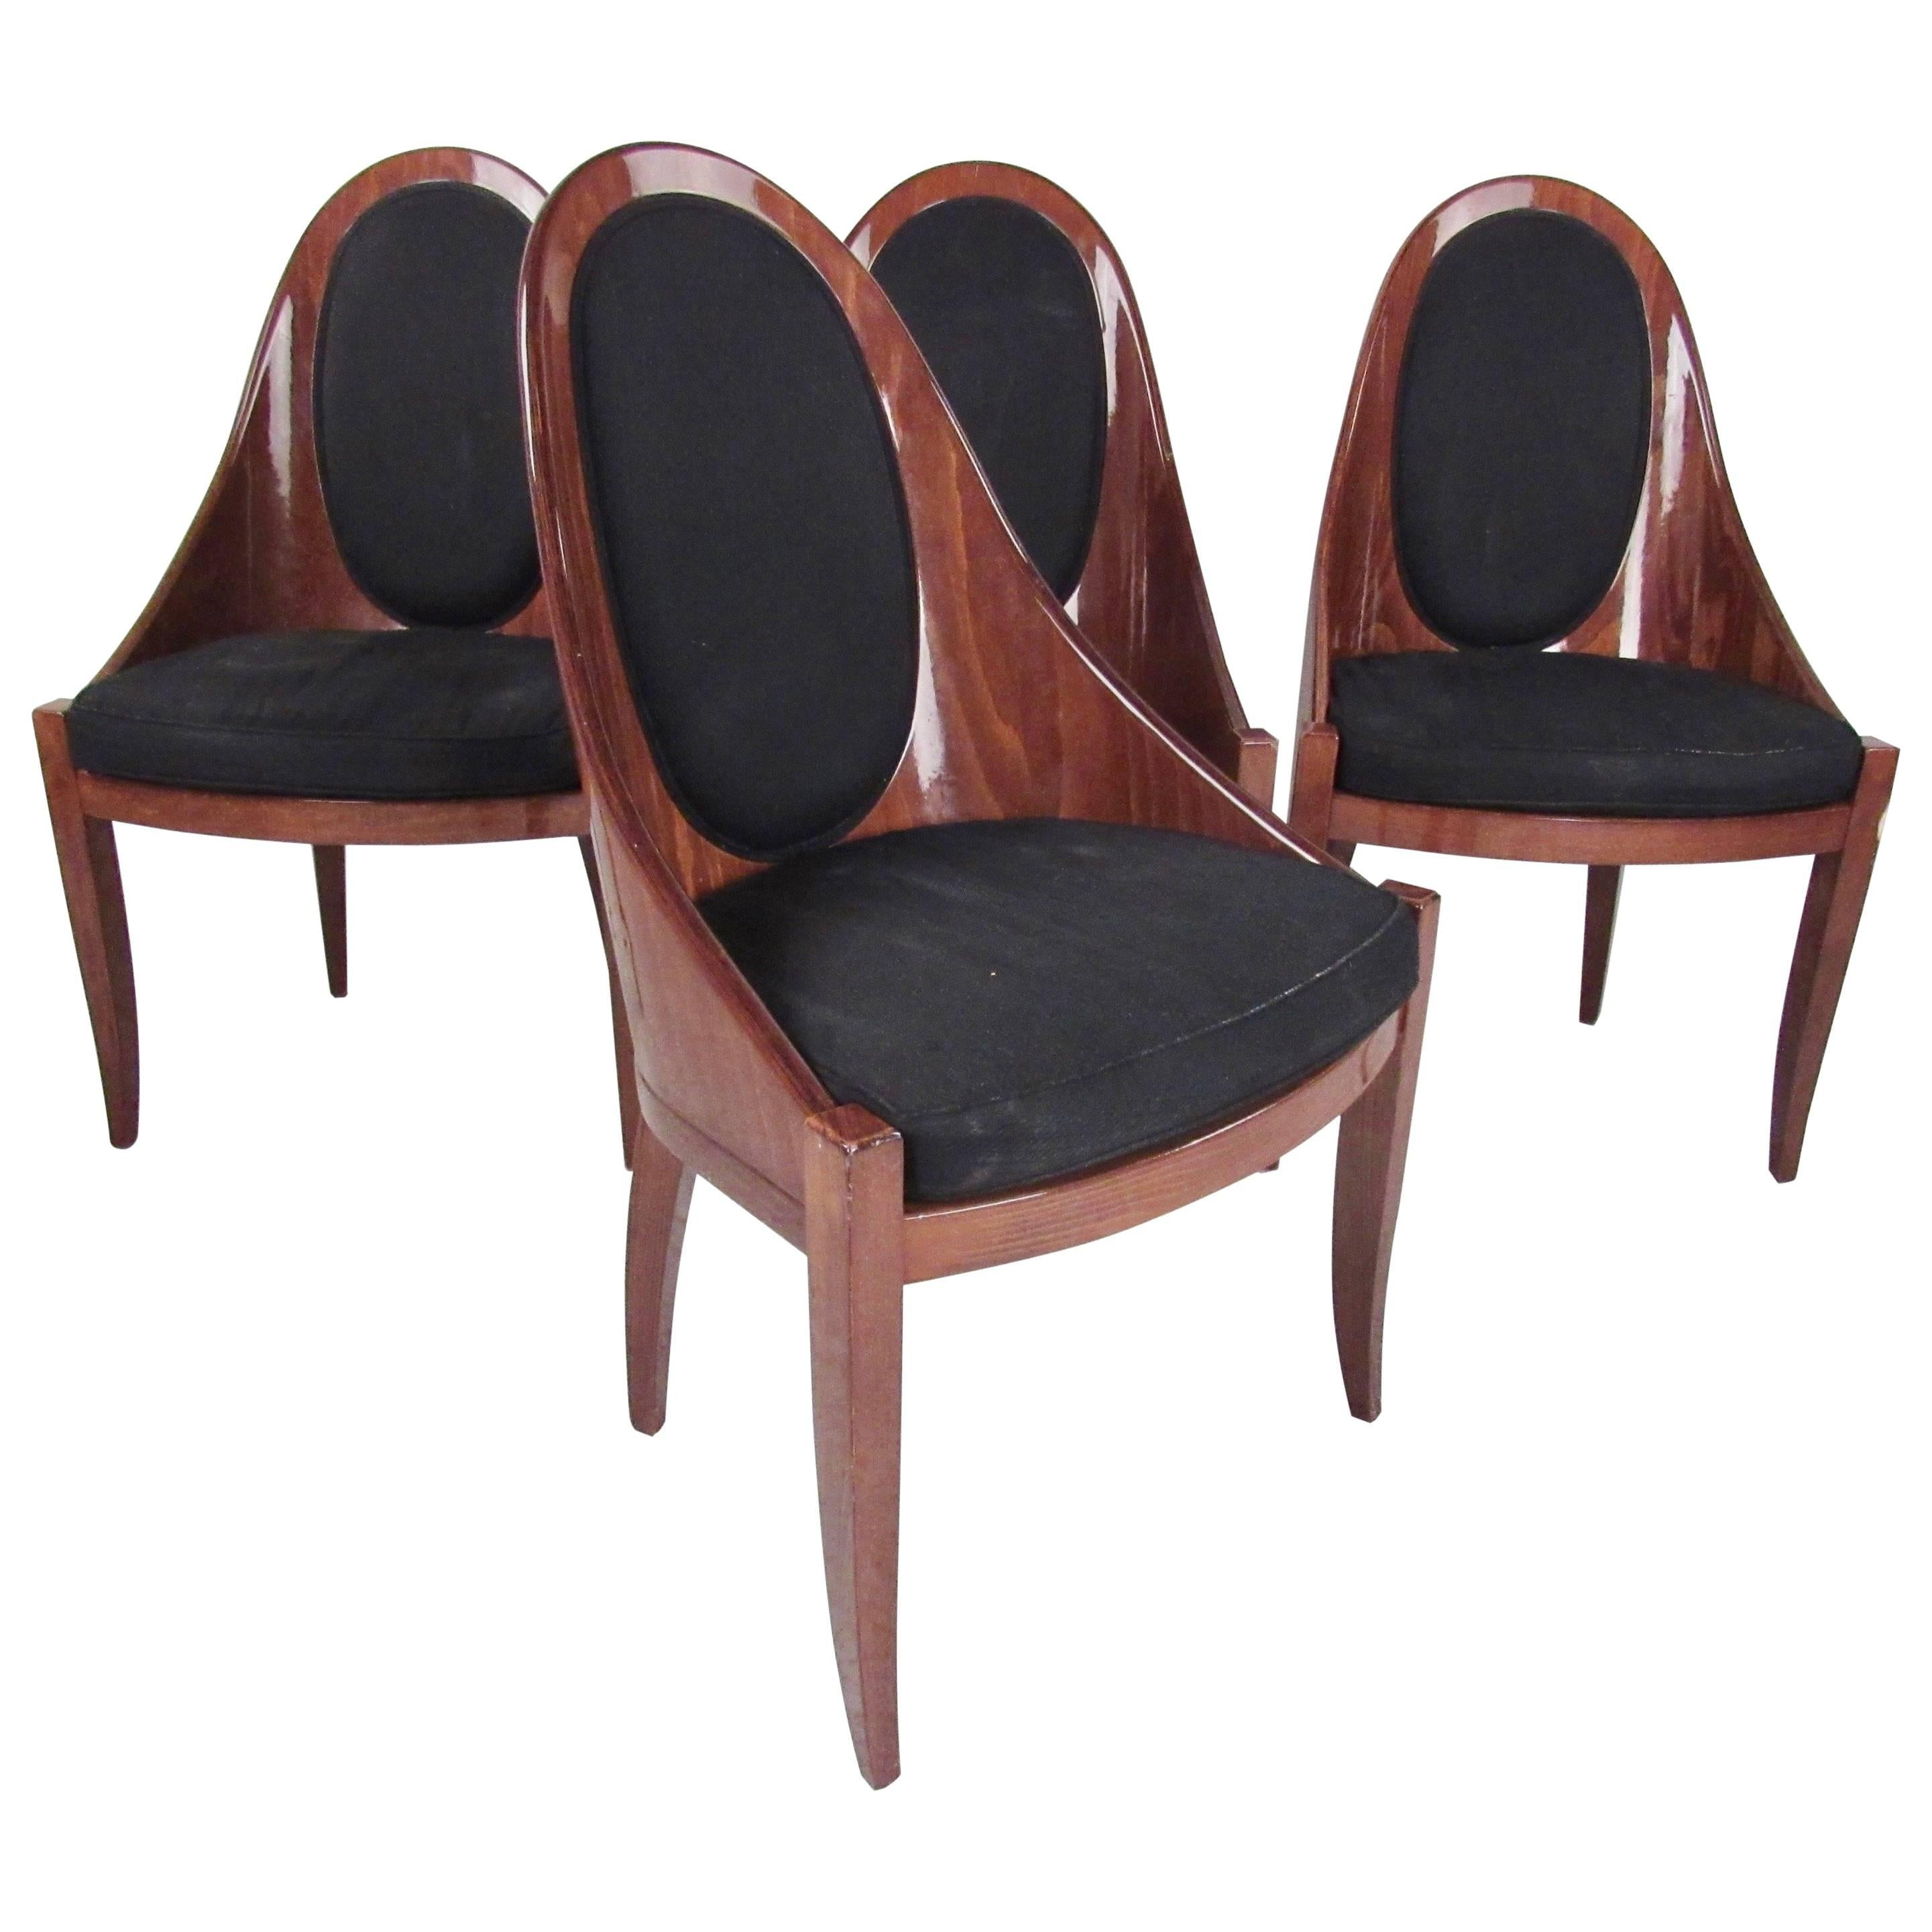 Set of Four Dining Chairs by Pietro Costantini